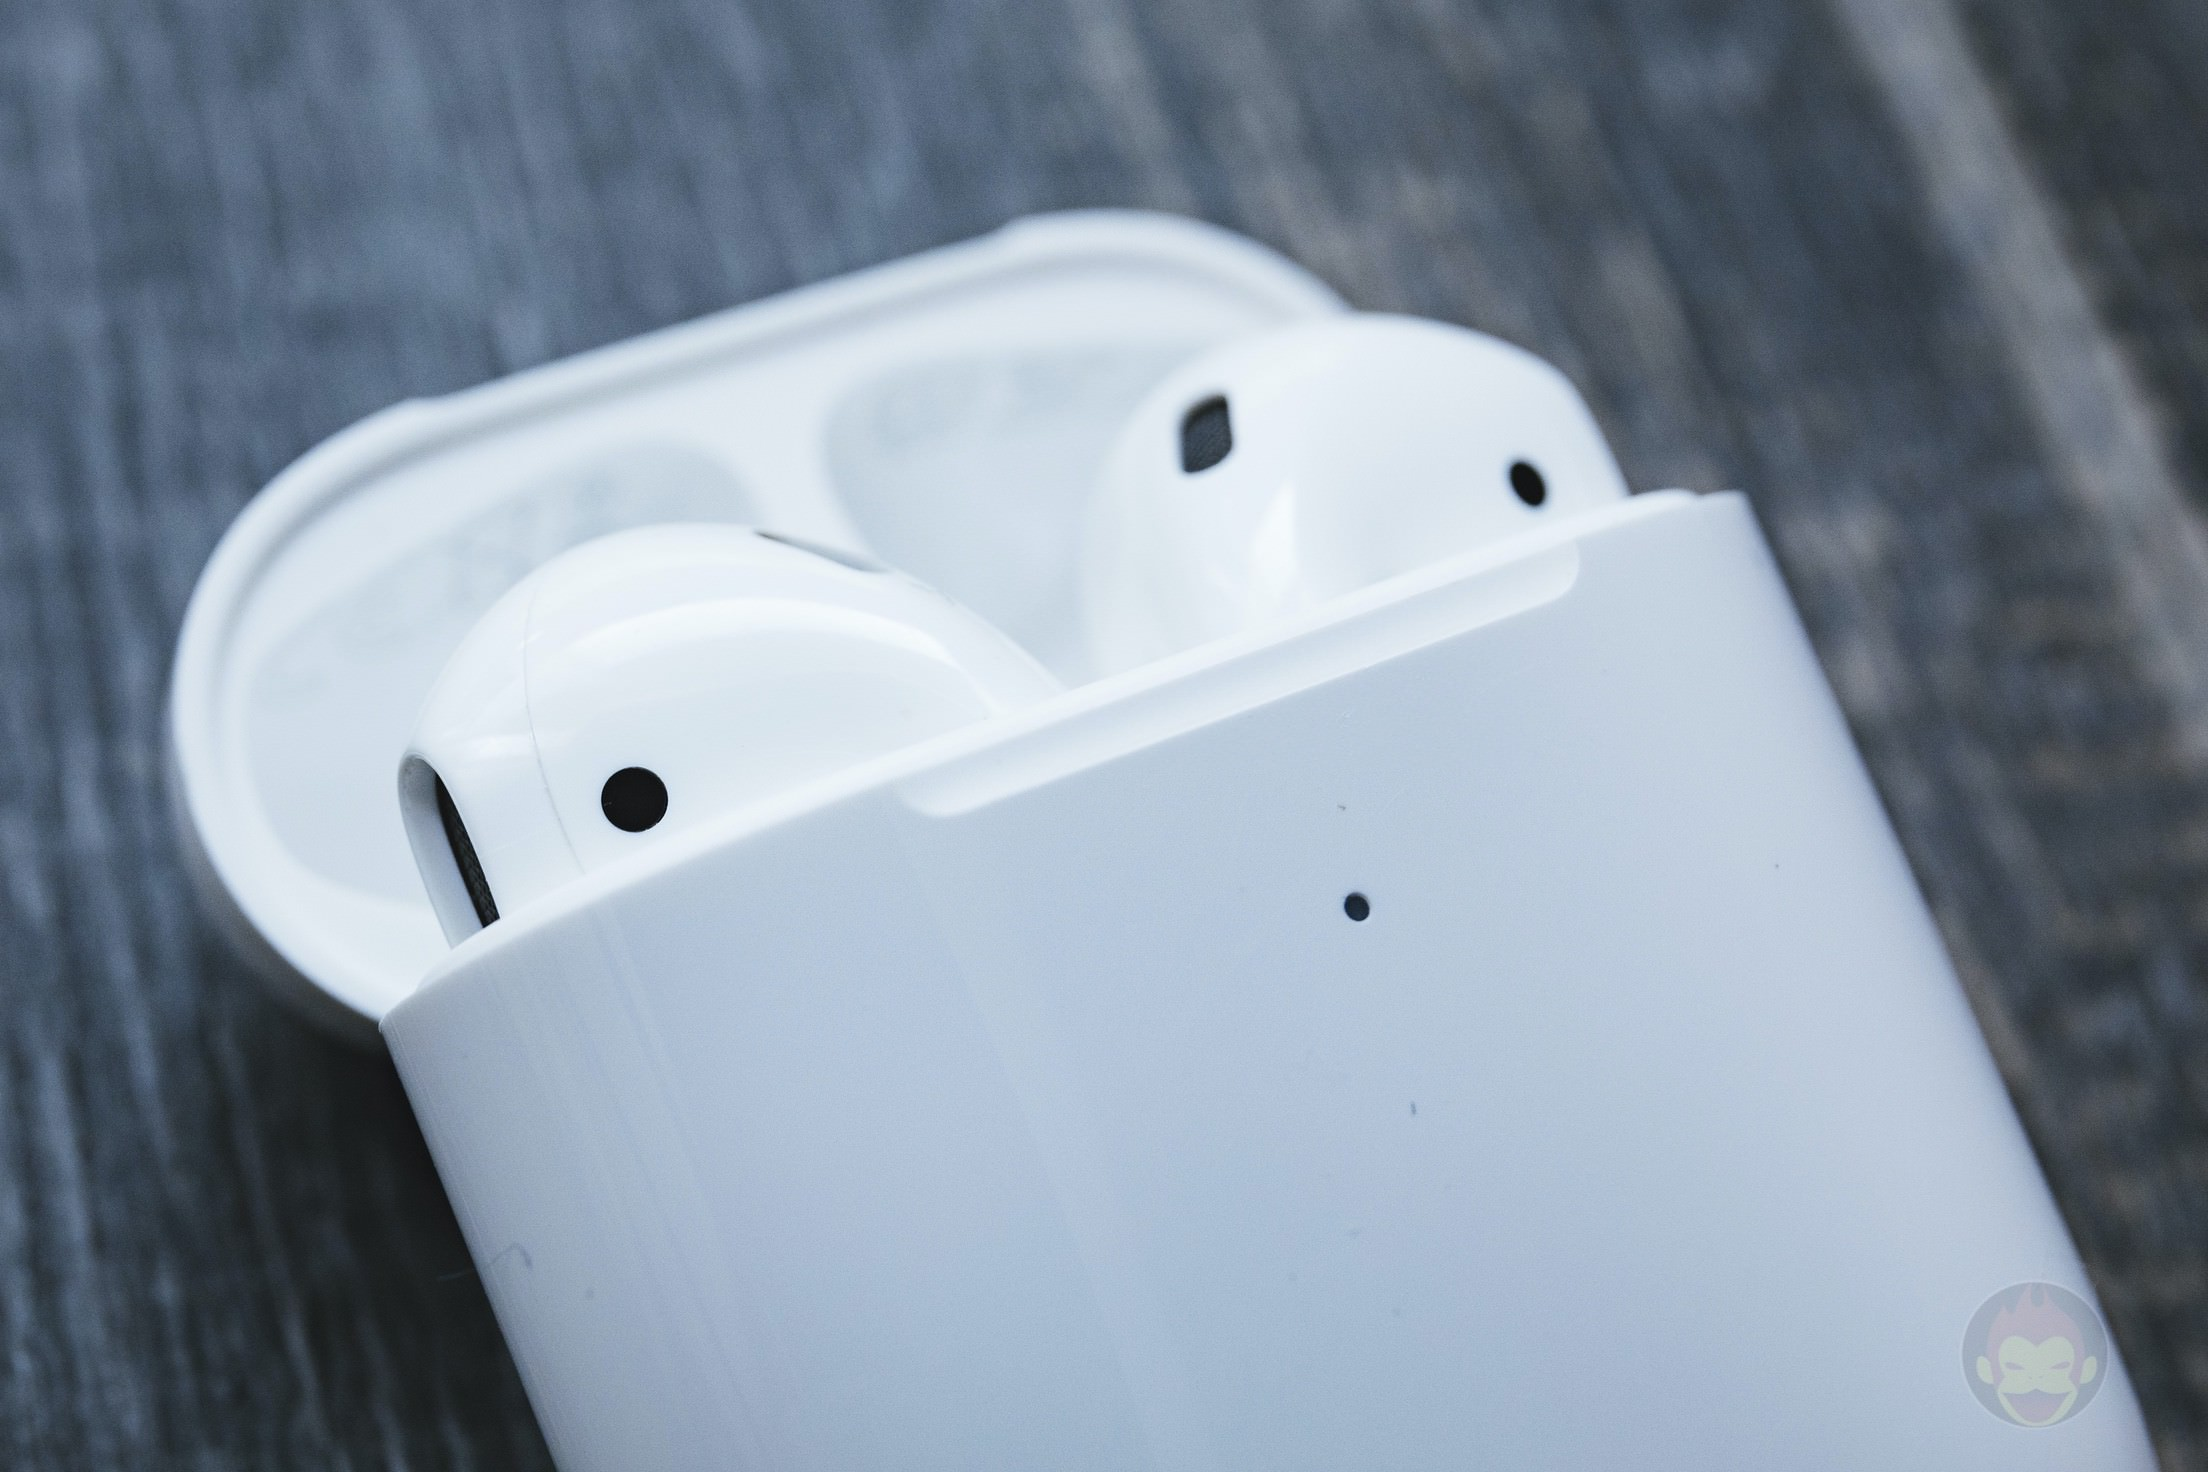 AirPods-2nd-Generation-2019-Review-10.jpg